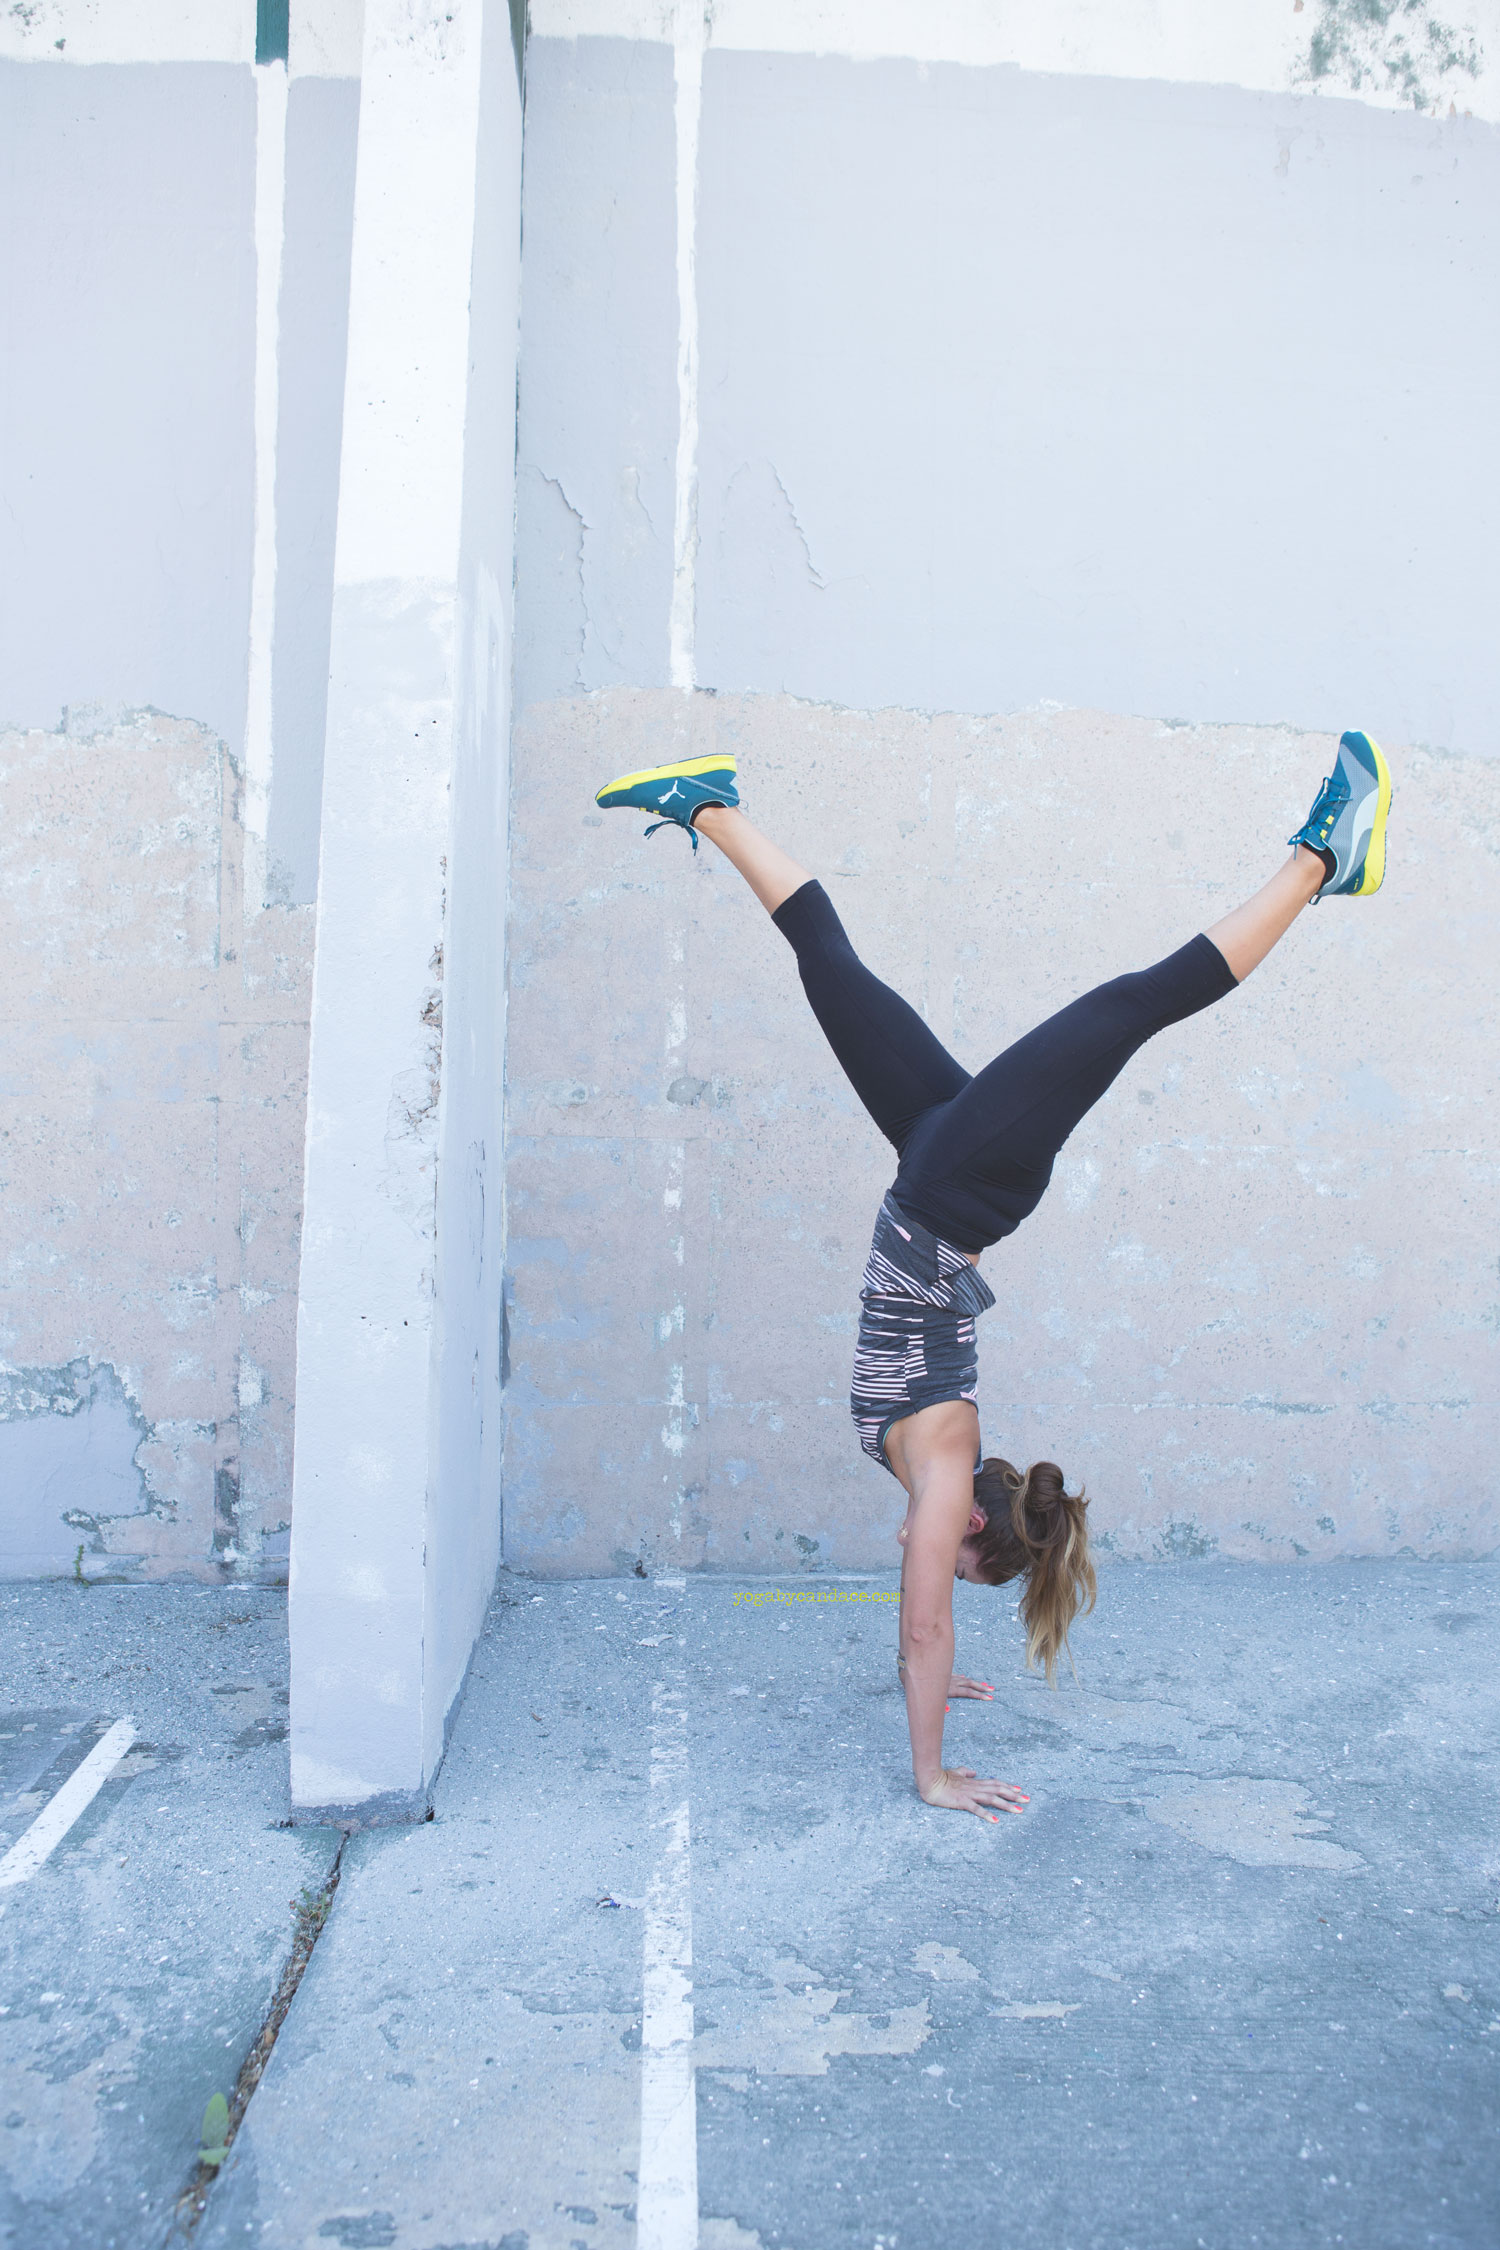 Pin now, practice handstand later!   Wearing:  Sweaty Betty leggings ,  Puma tank  and  sneakers .